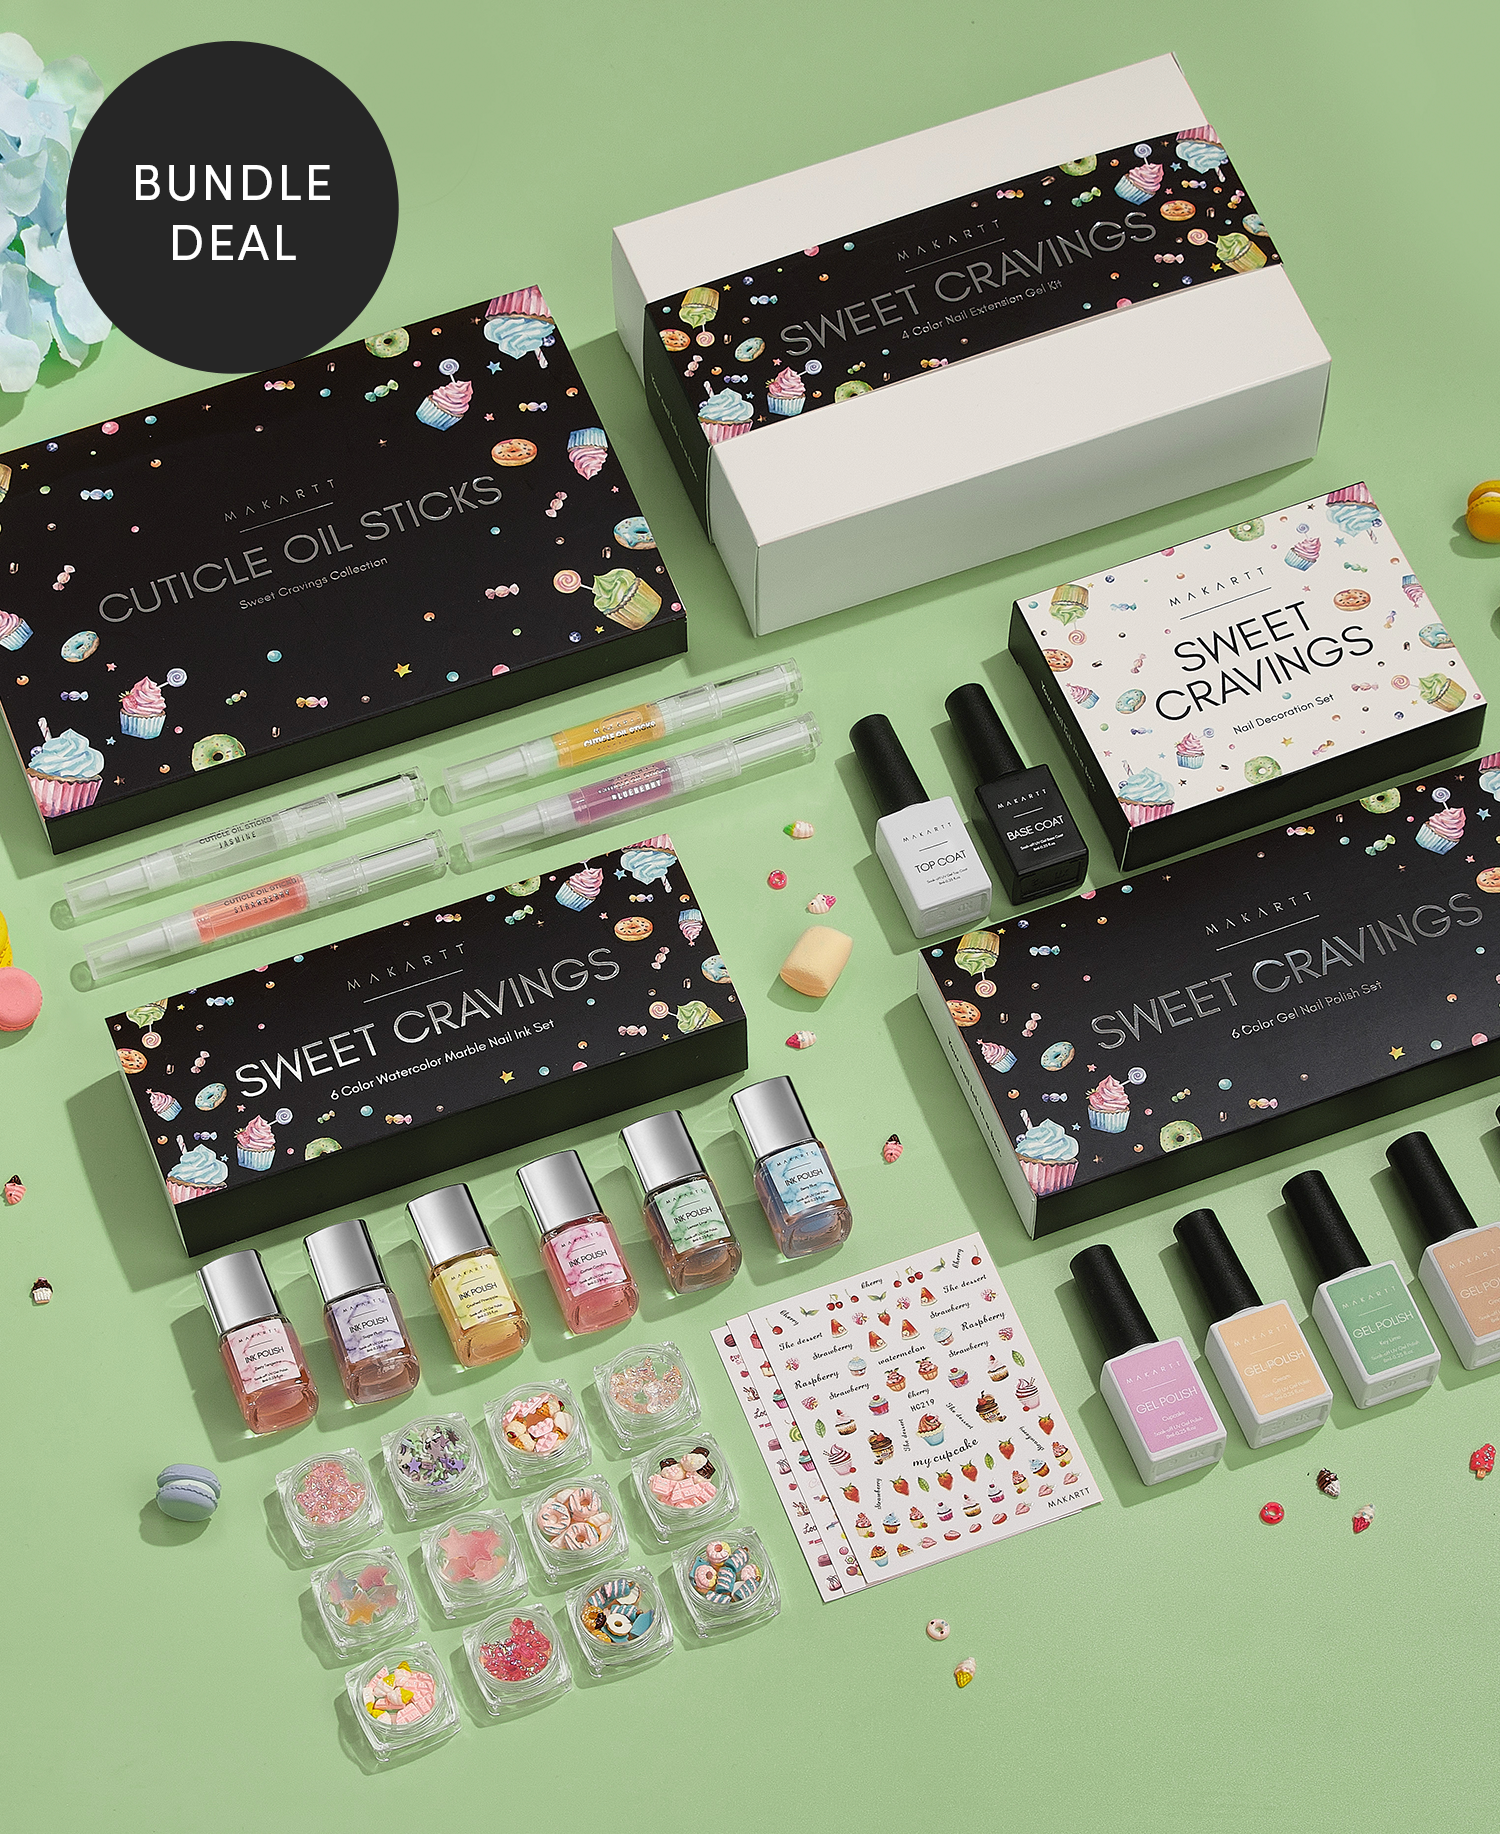 Sweet Cravings Full Collection Bundle